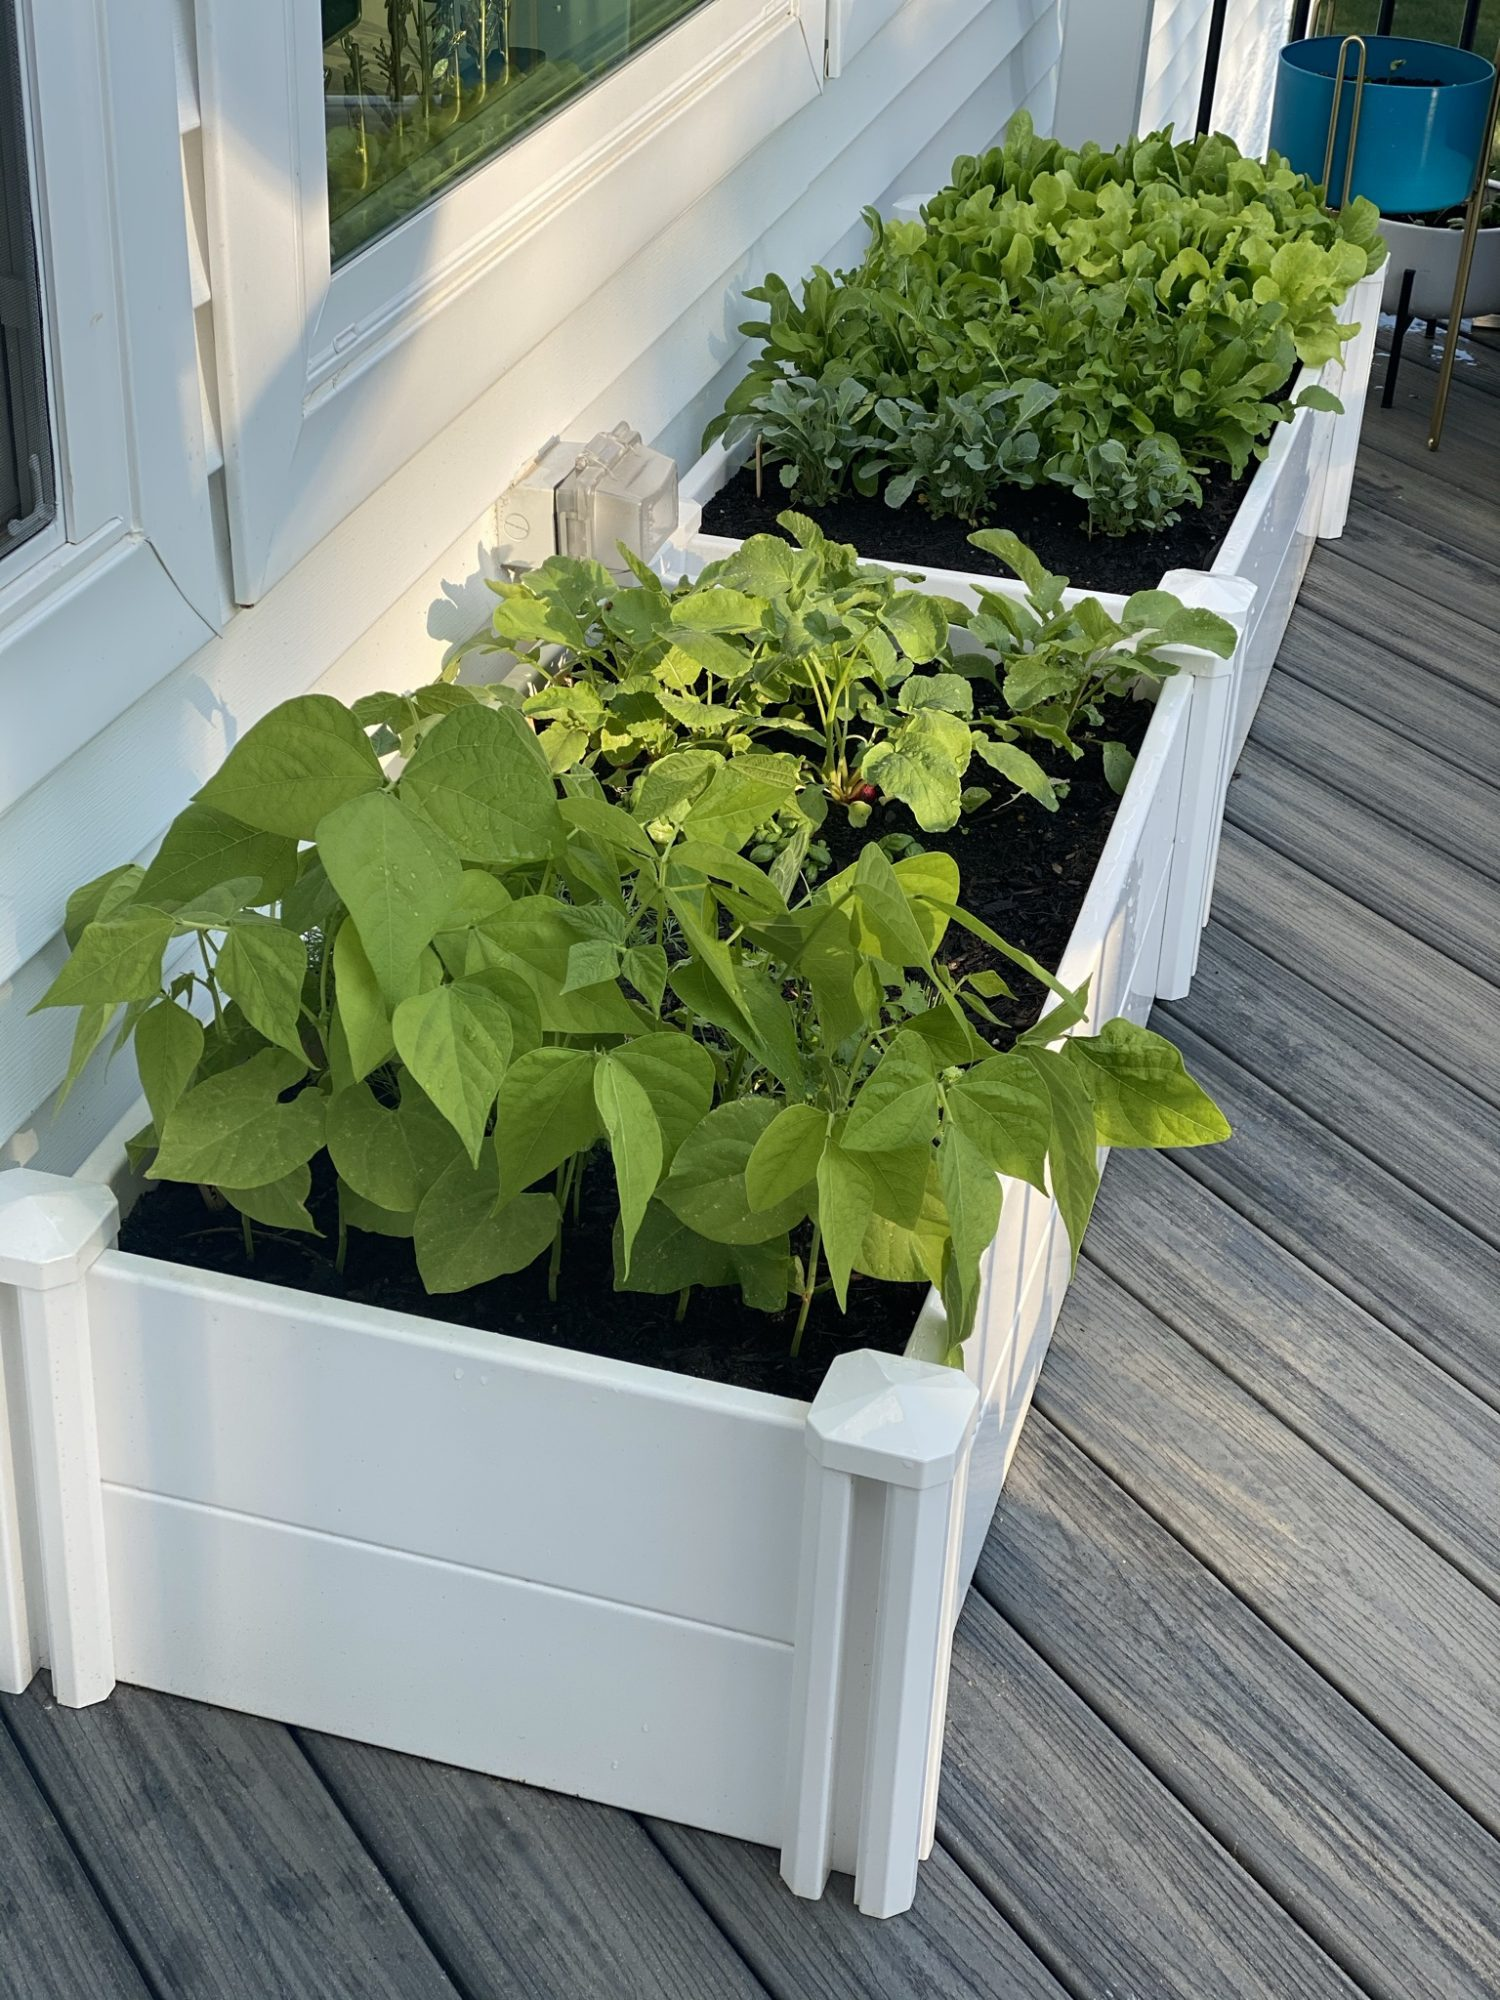 Beginners Guide to Home Gardening